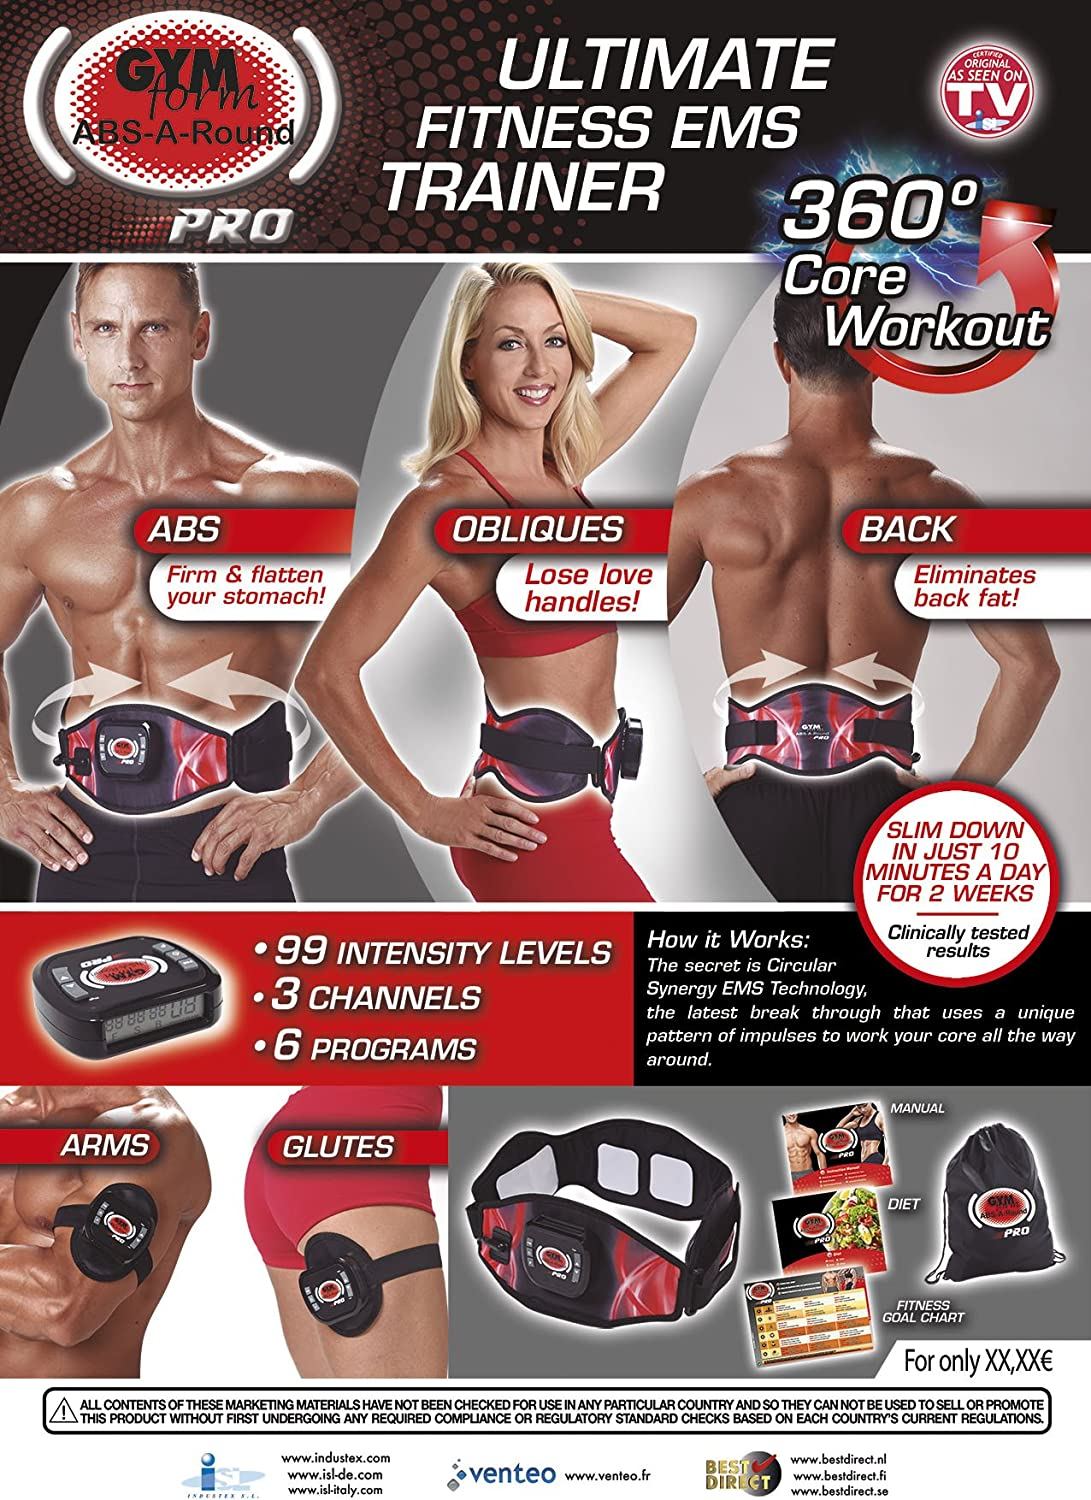 BEST DIRECT Gymform Abs-a-Round Fat Reducing System for Strong Abs Muscles Belts Vest EMS Stimulator Use at Home Easy and Fast Fitness Machine for Men and Women